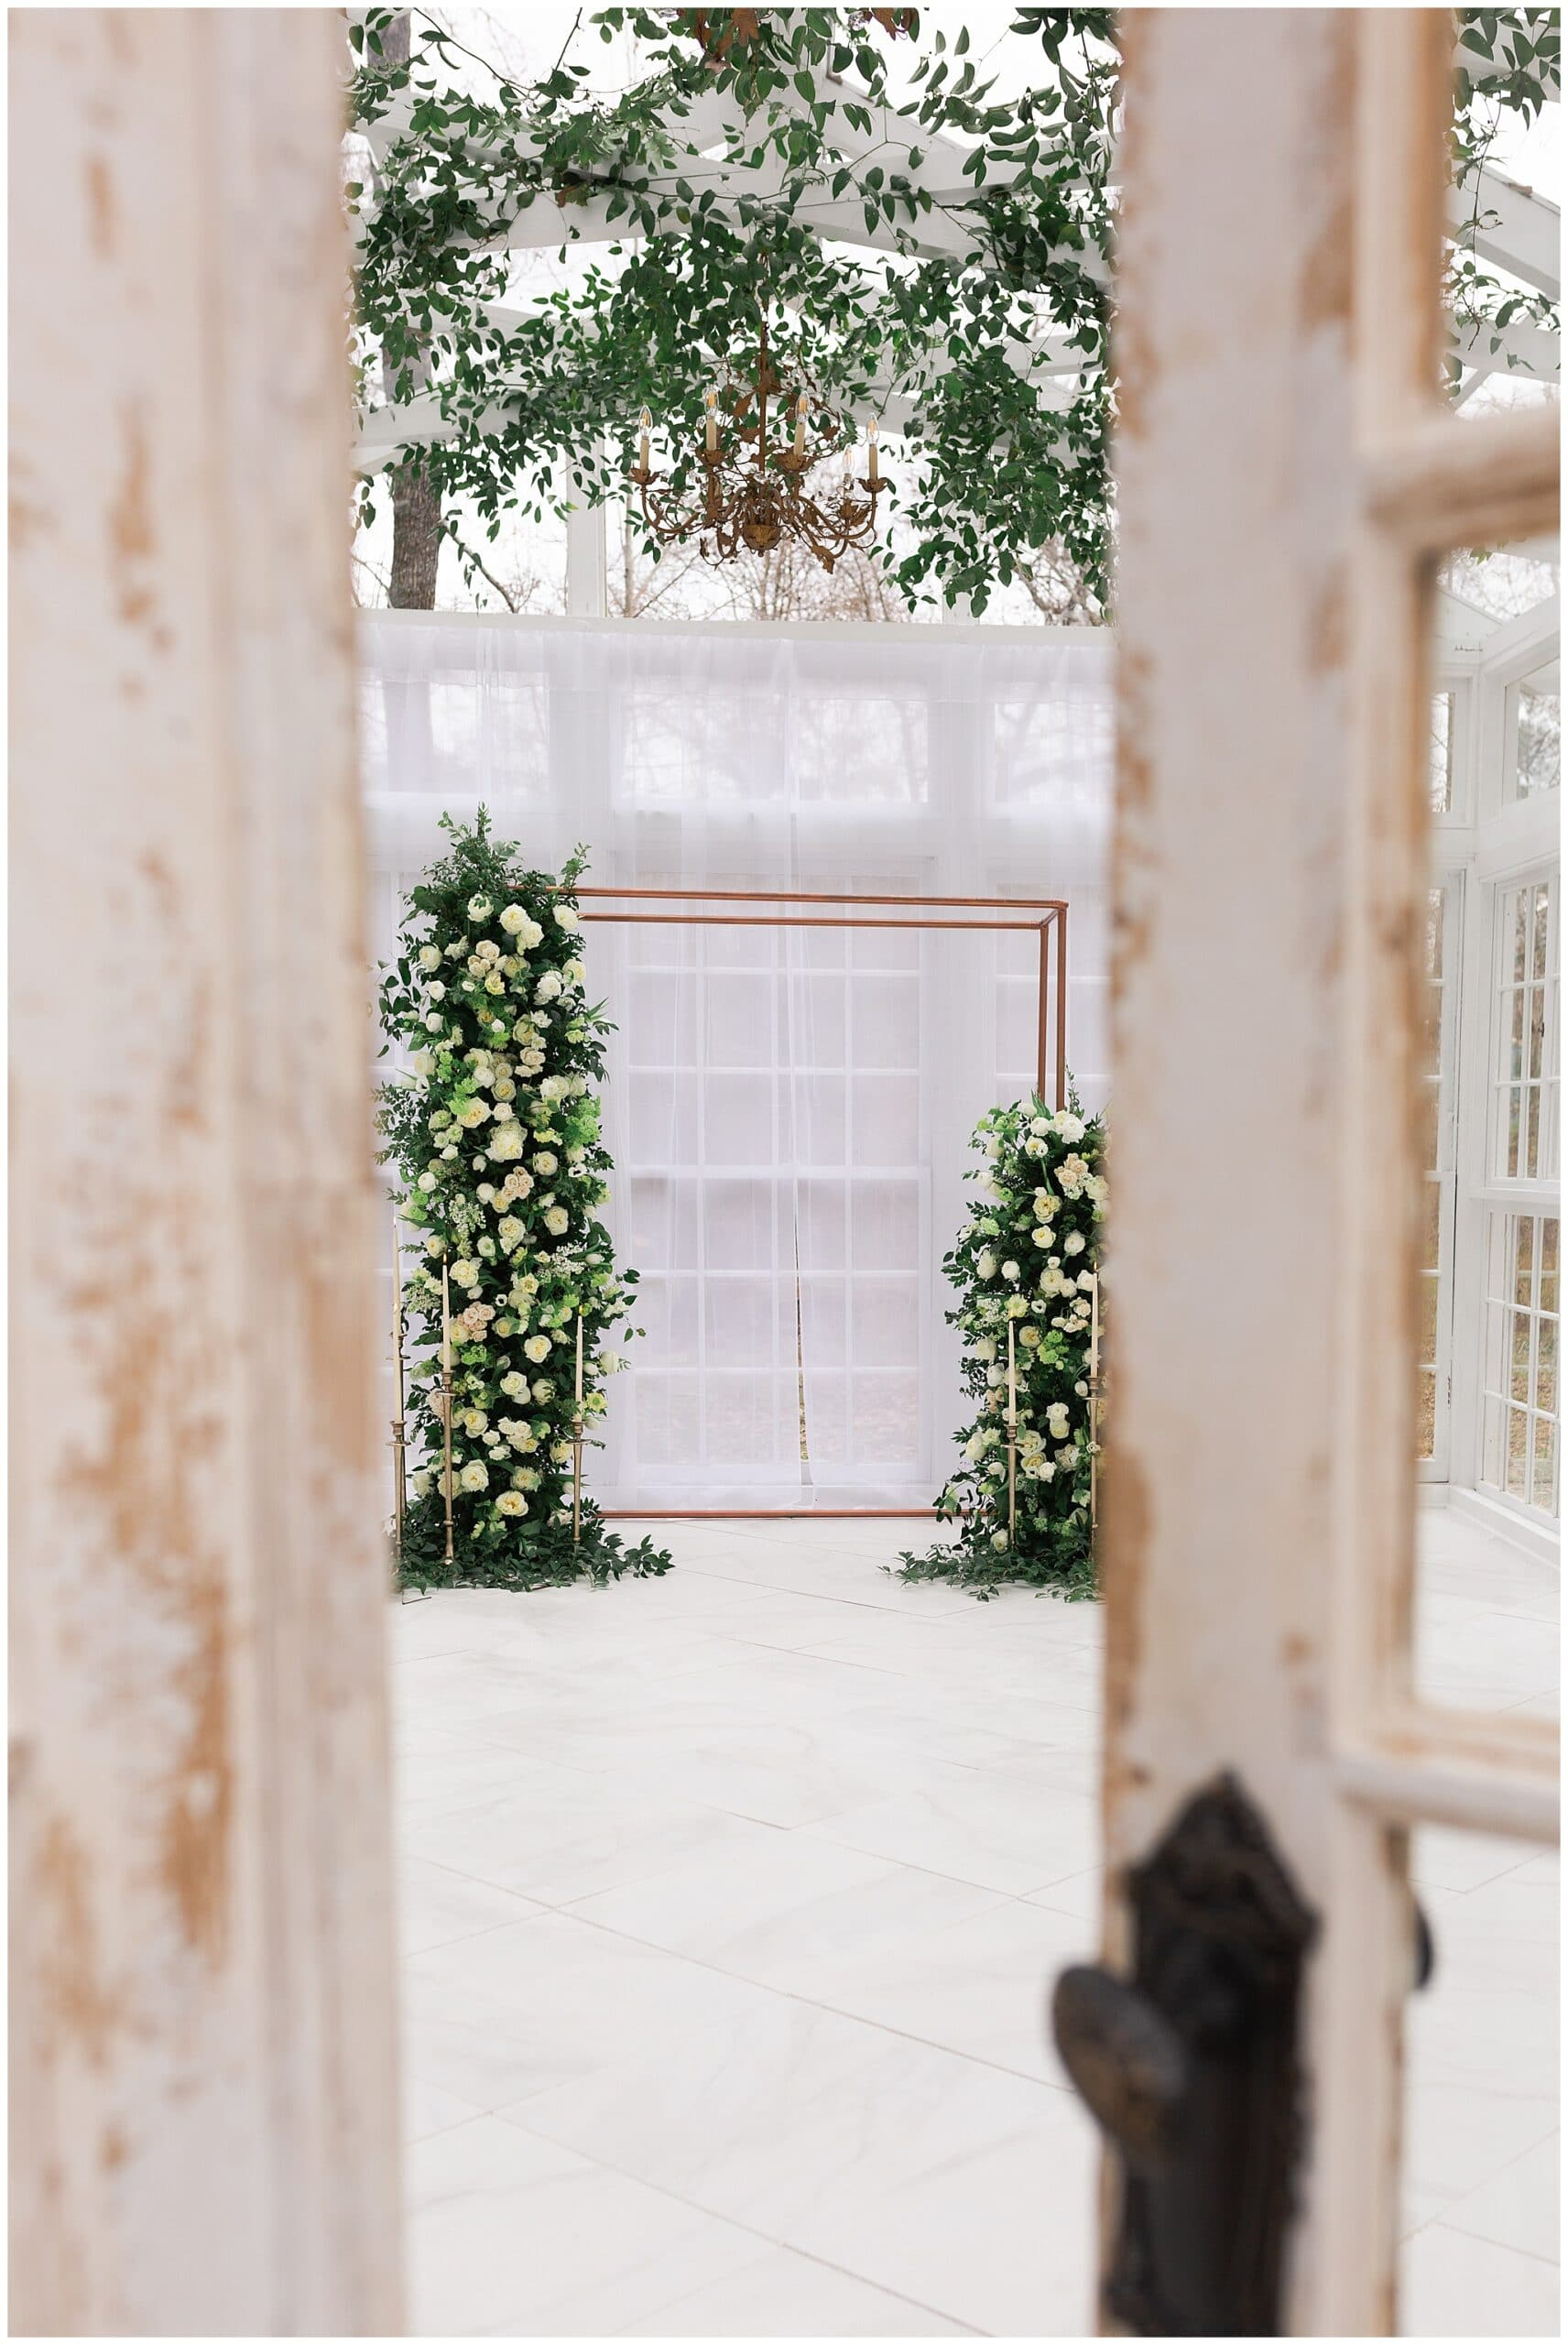 Ravenclaw inspired wedding at Oak Atelier in Houston, Texas photographed by Swish and Click Photography